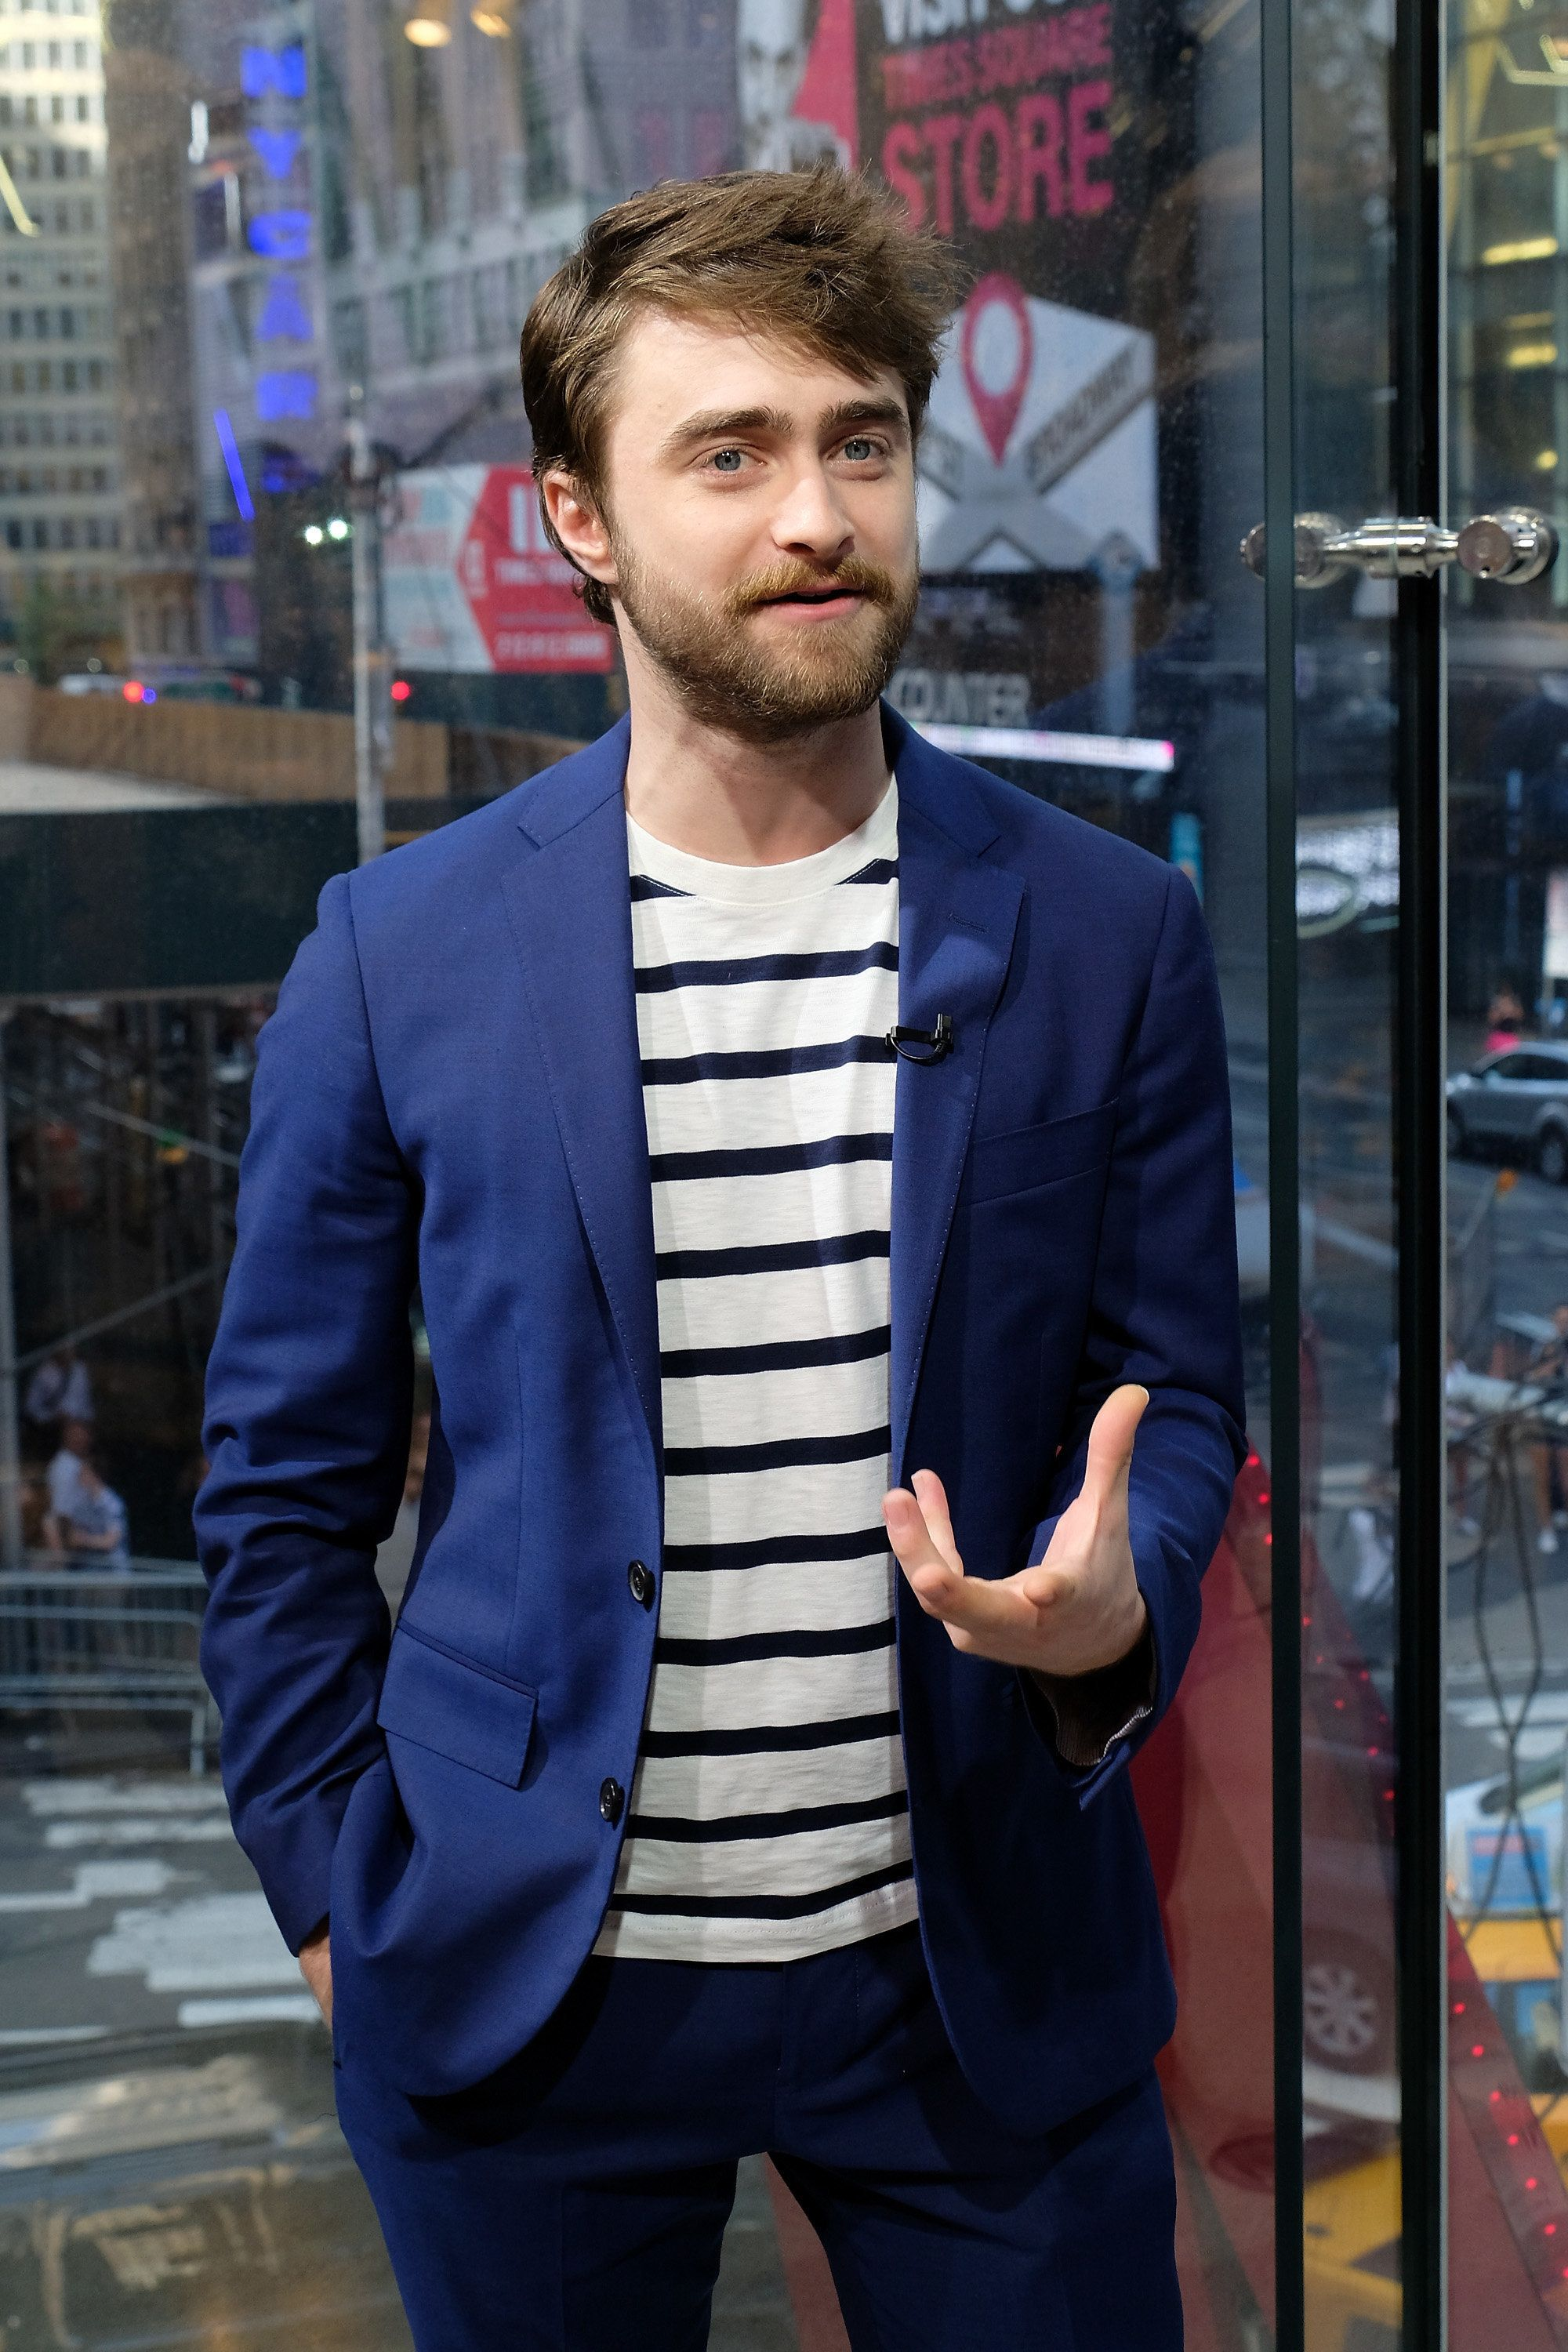 NEW YORK, NY - AUGUST 15:  Daniel Radcliffe visits 'Extra' at their New York studios at H&M in Times Square on August 15, 2016 in New York City.  (Photo by D Dipasupil/Getty Images)